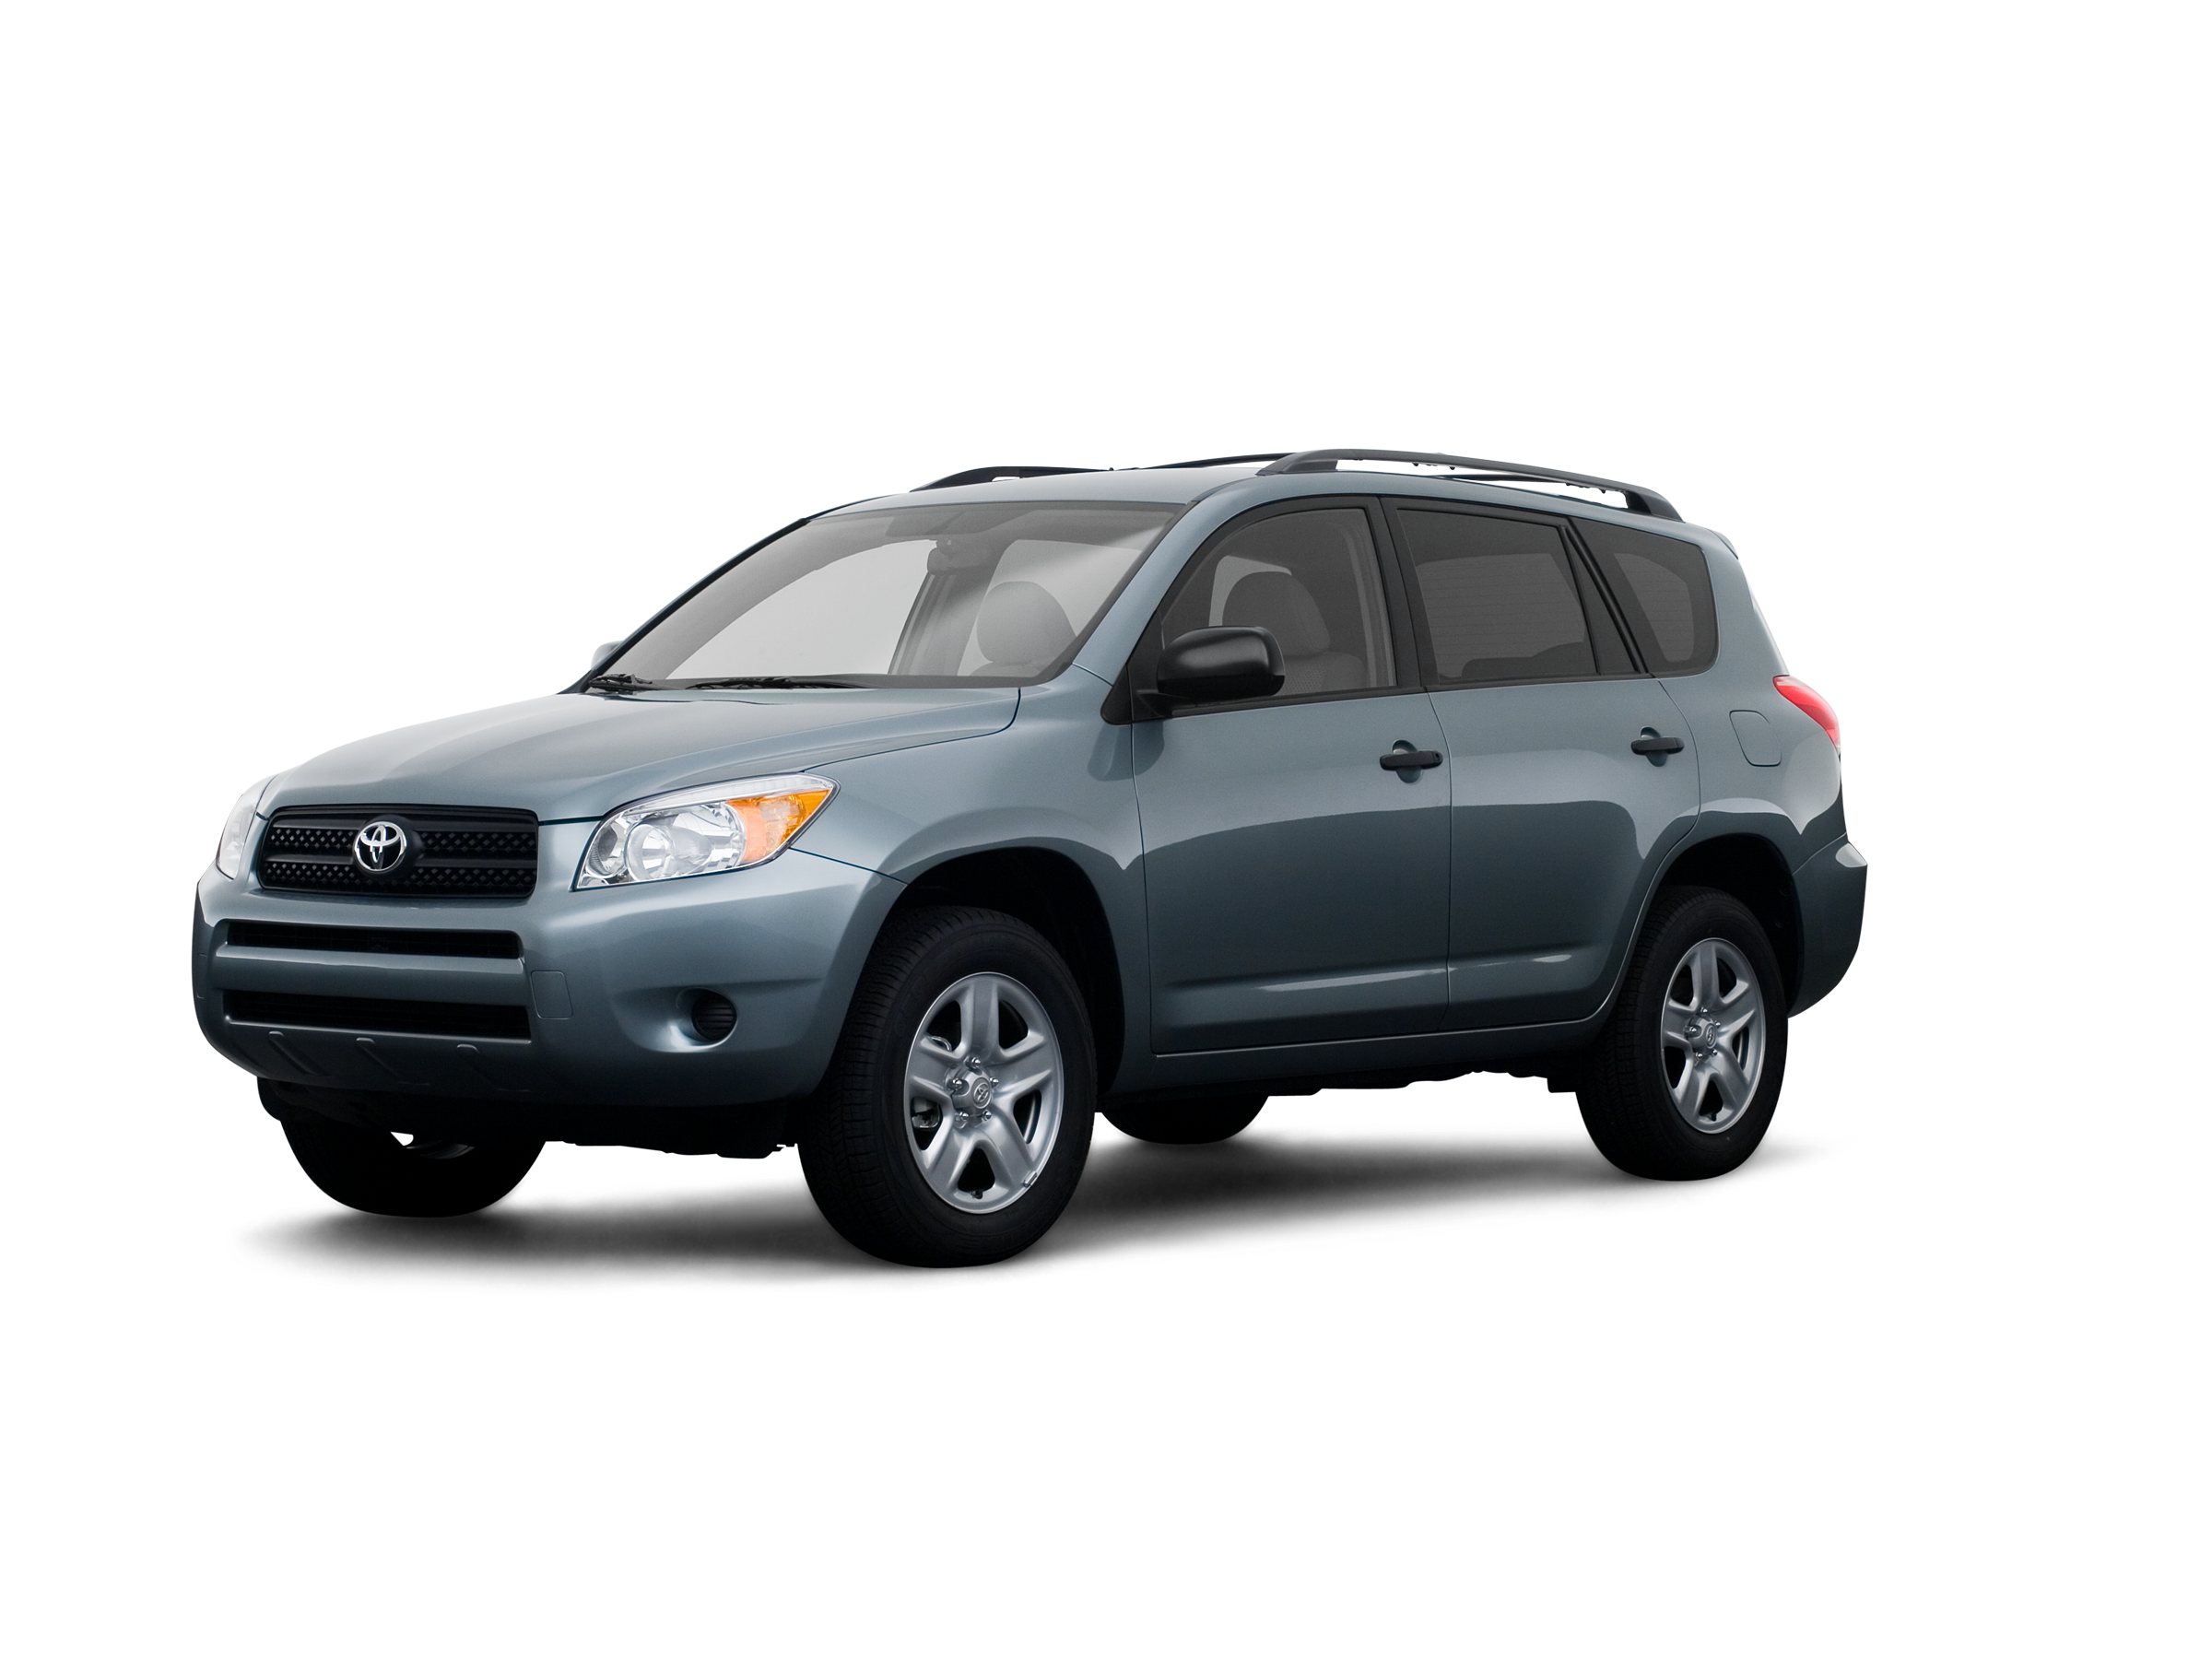 2008 Toyota Rav4 Values Cars For Sale Kelley Blue Book